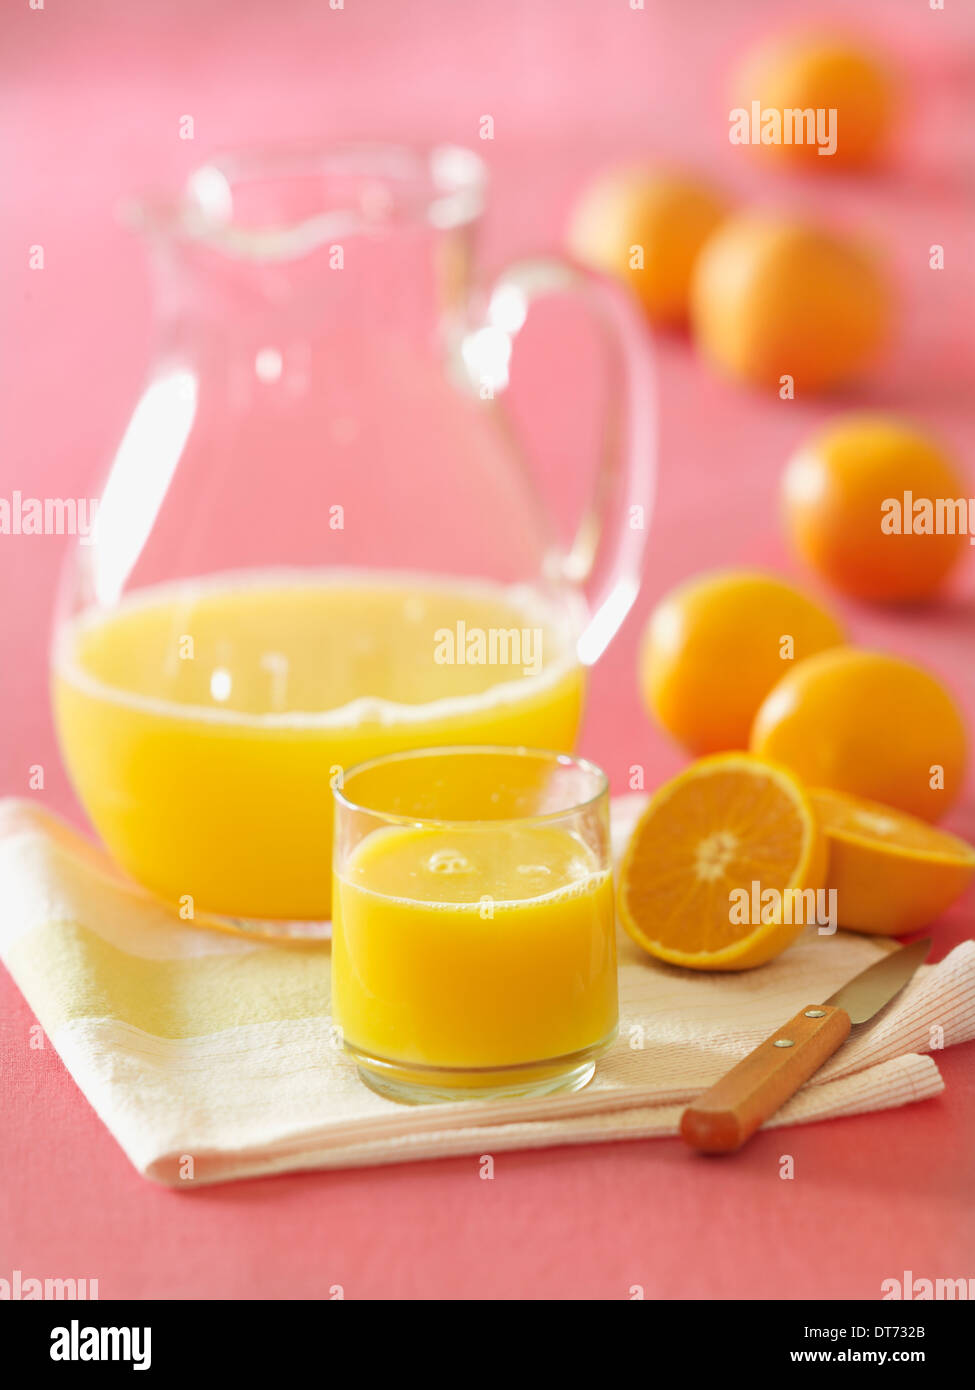 A glass pitcher of orange juice with a glass filled with fresh squeezed orange juice with several oranges in the background. - Stock Image